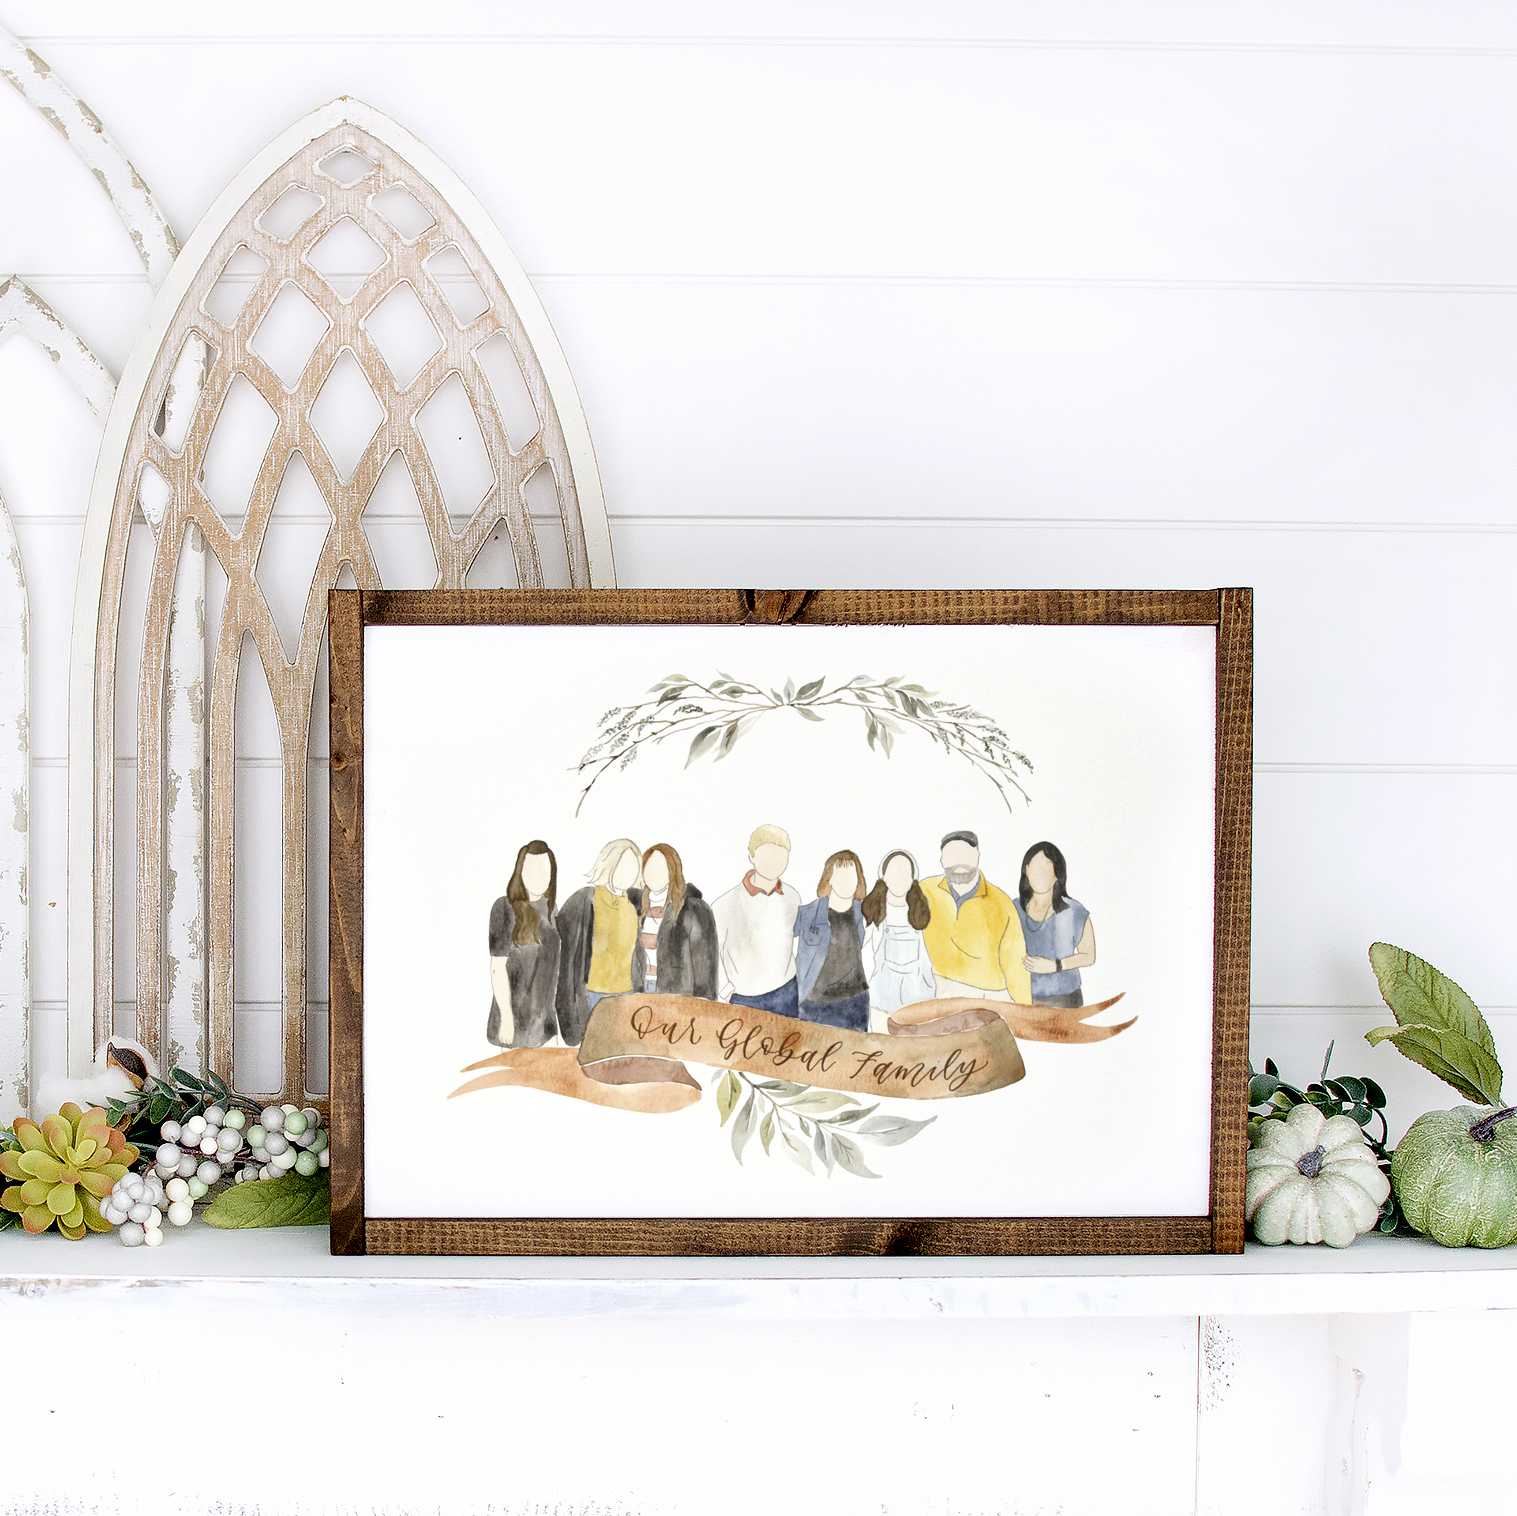 Watercolor Family Portrait of Exchange Student Family by Sam Allen Creates